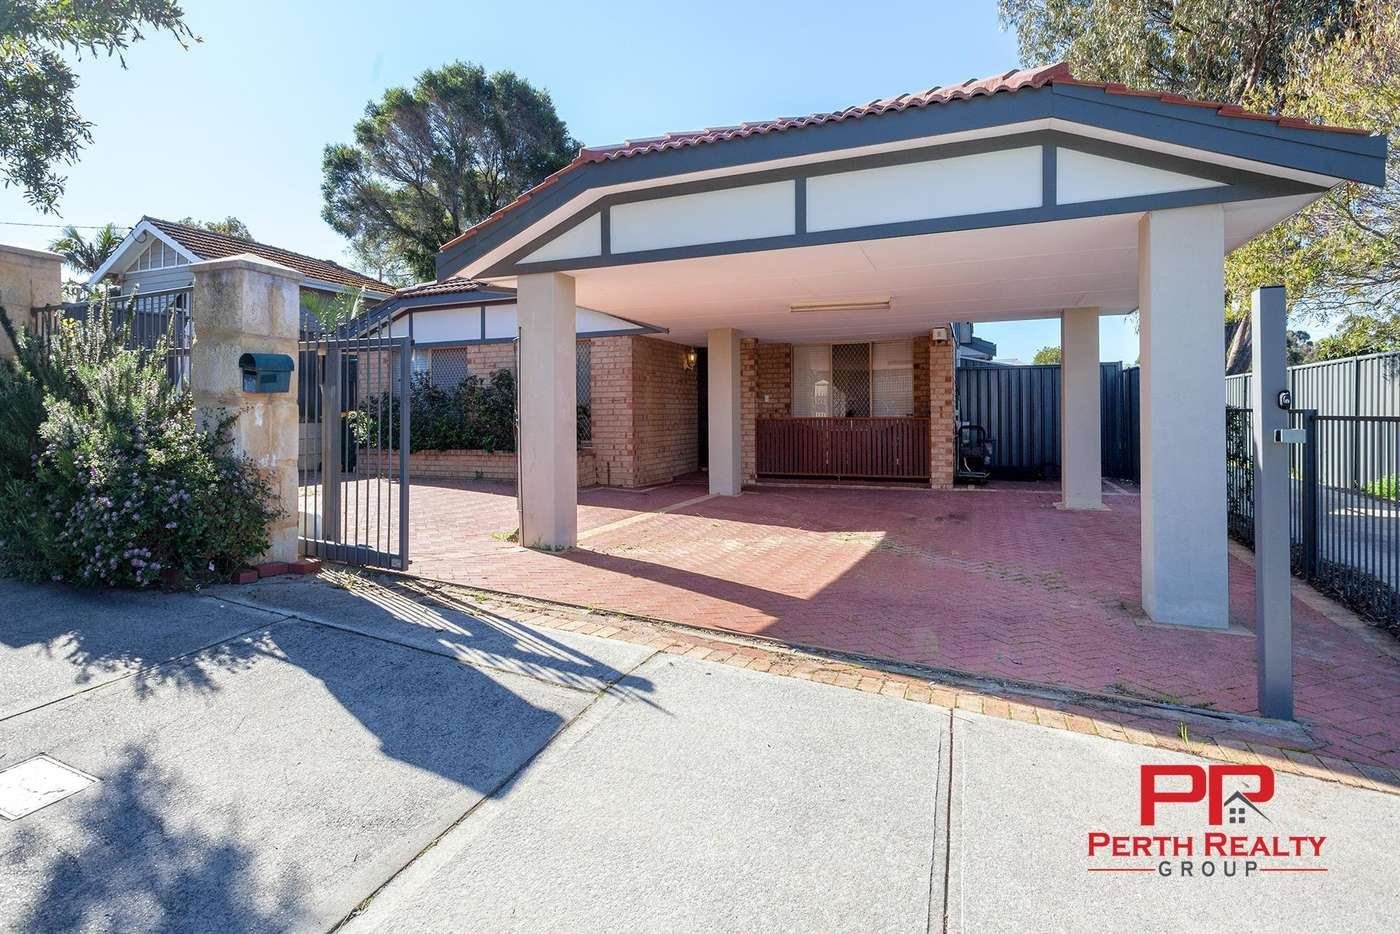 Main view of Homely house listing, 180 Anzac Terrace, Bassendean WA 6054